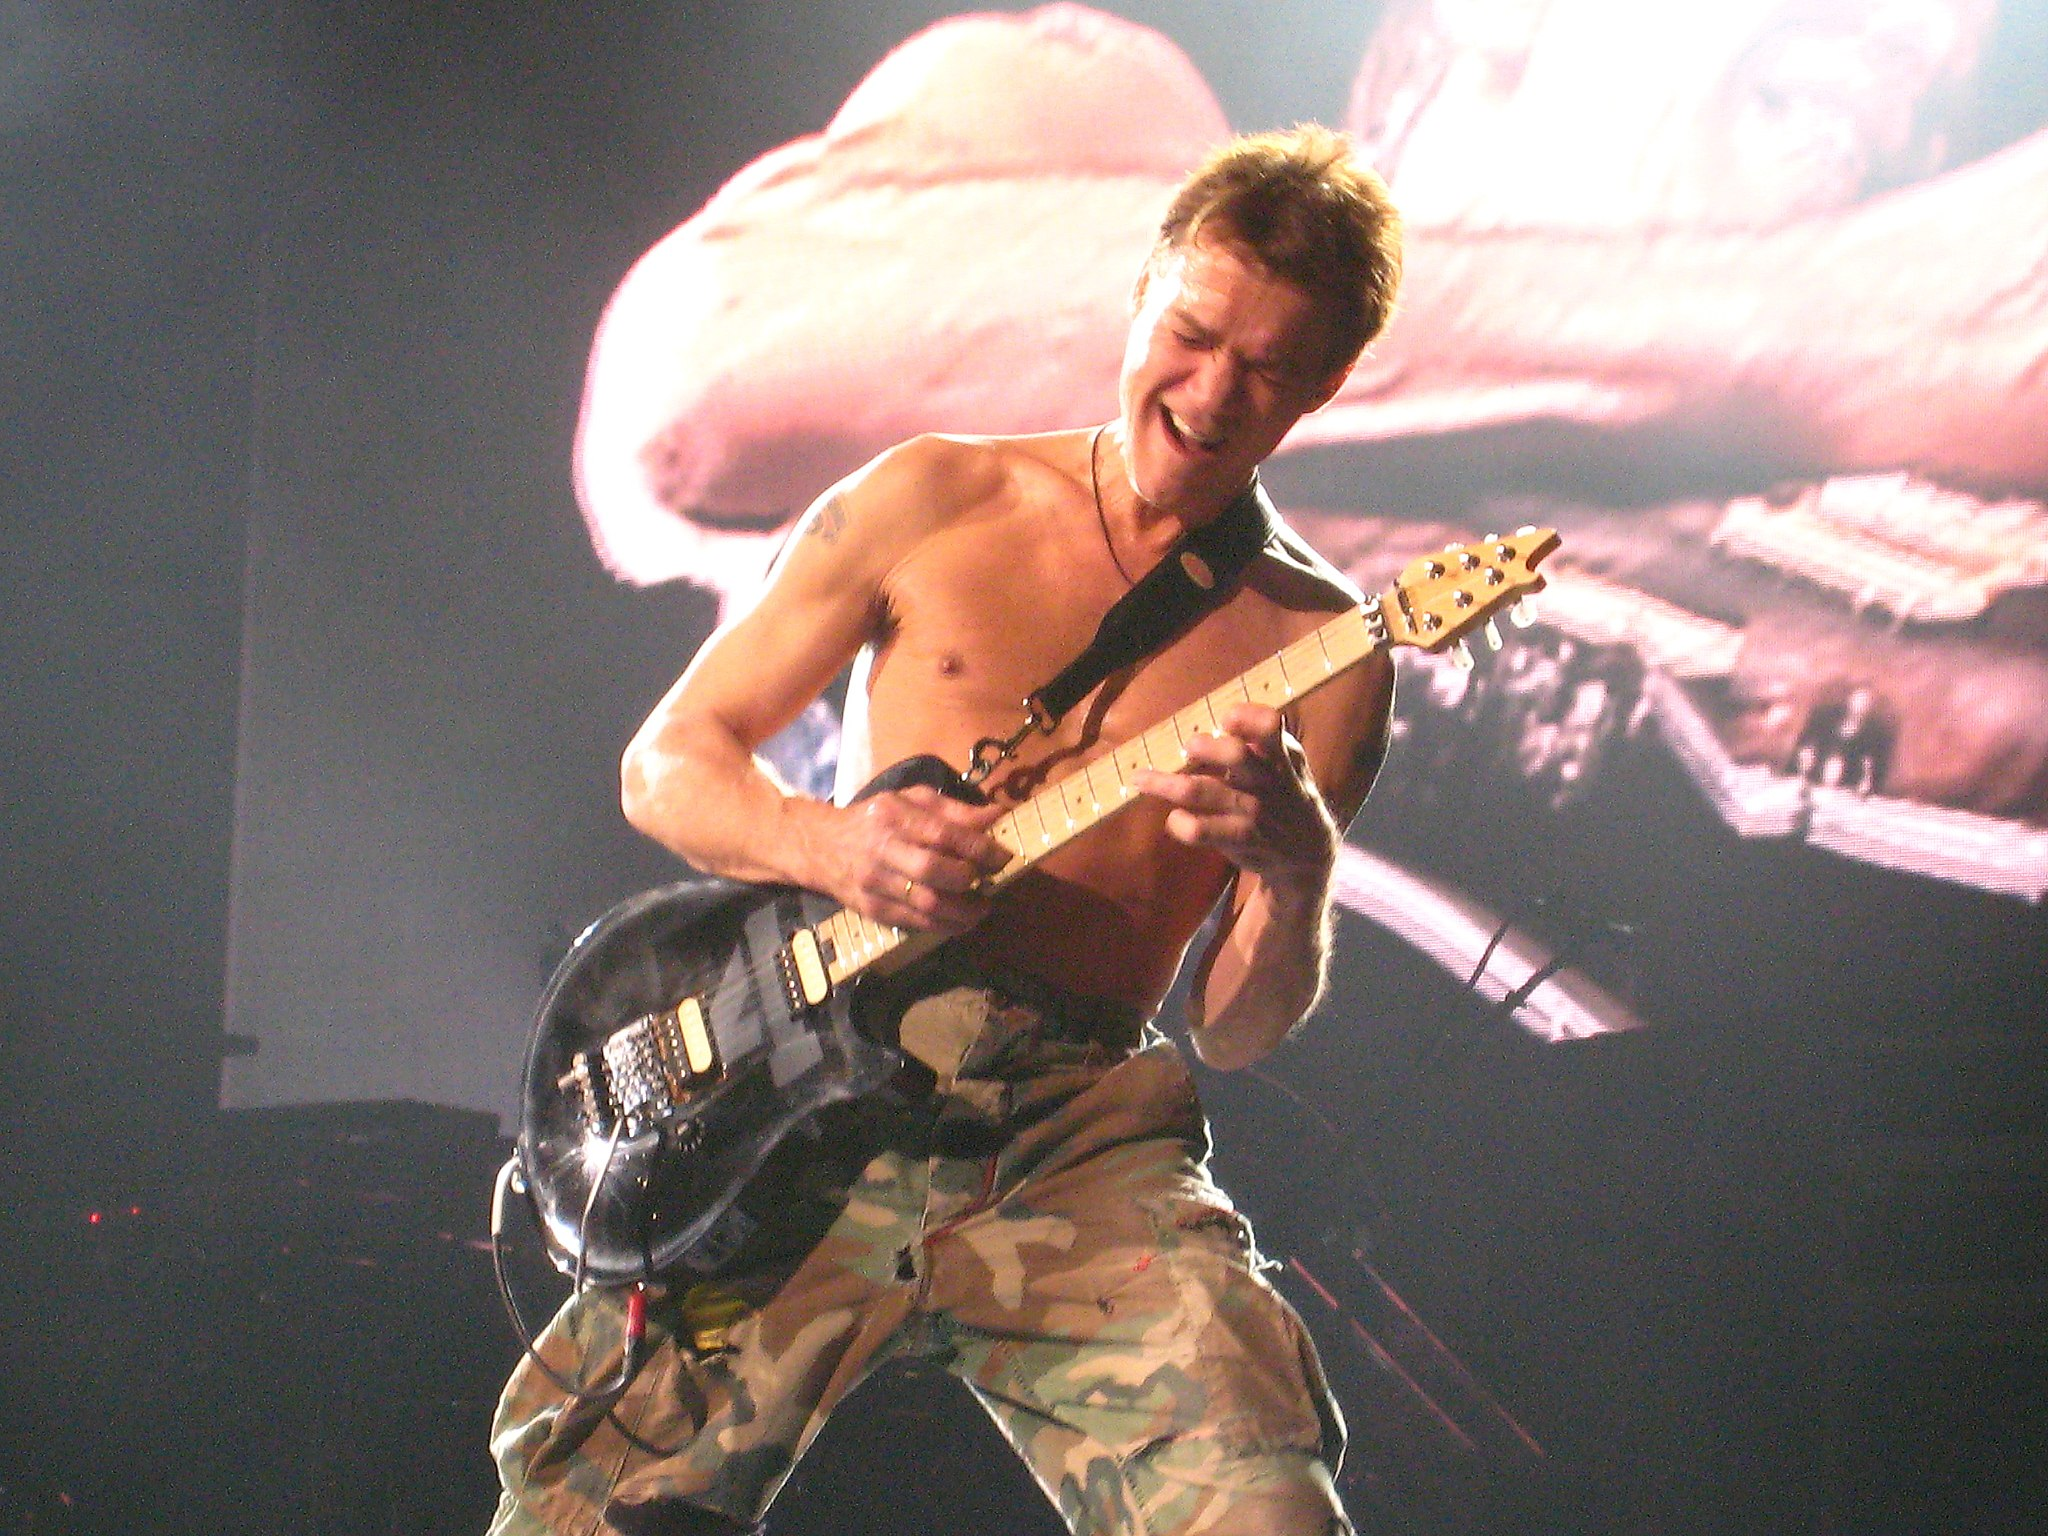 Eddie van Halen / Anirudh Koul from Montreal, Canada / CC BY (https://creativecommons.org/licenses/by/2.0)